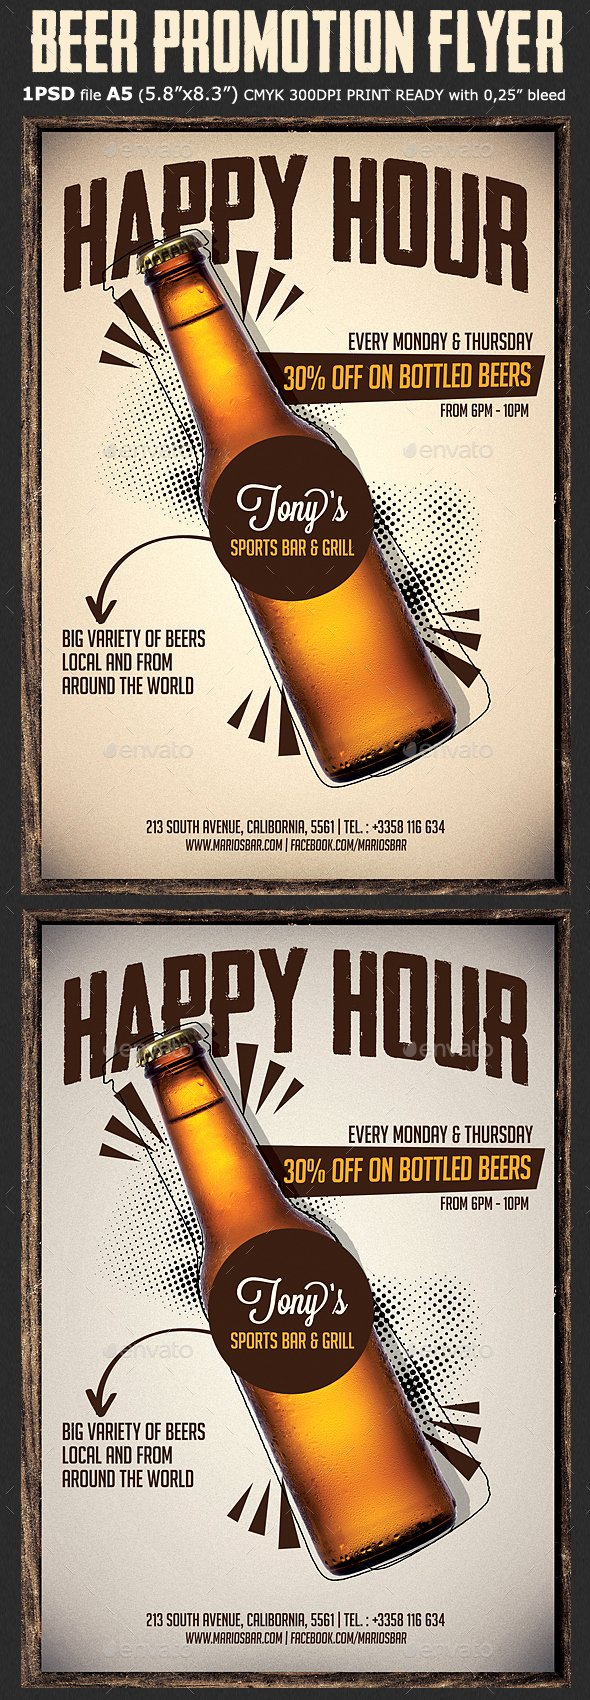 Happy Hour Flyer Template Best Of Beer Promotion Happy Hour Flyer by Hotpin